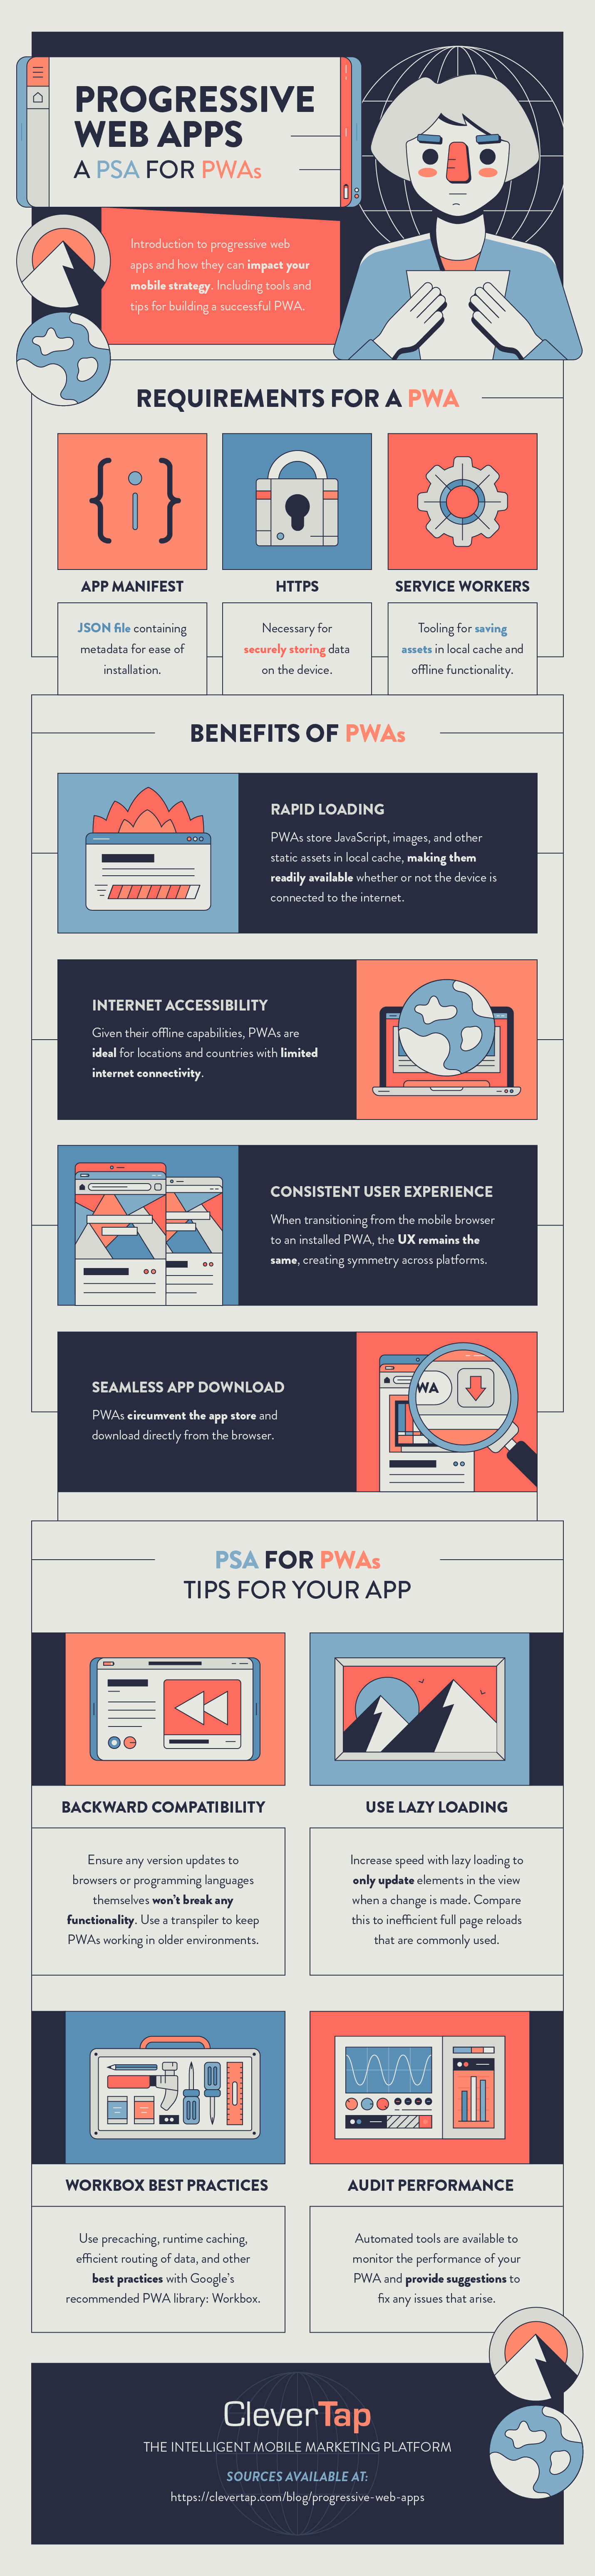 progressive web app infographic with definition, tips, and examples